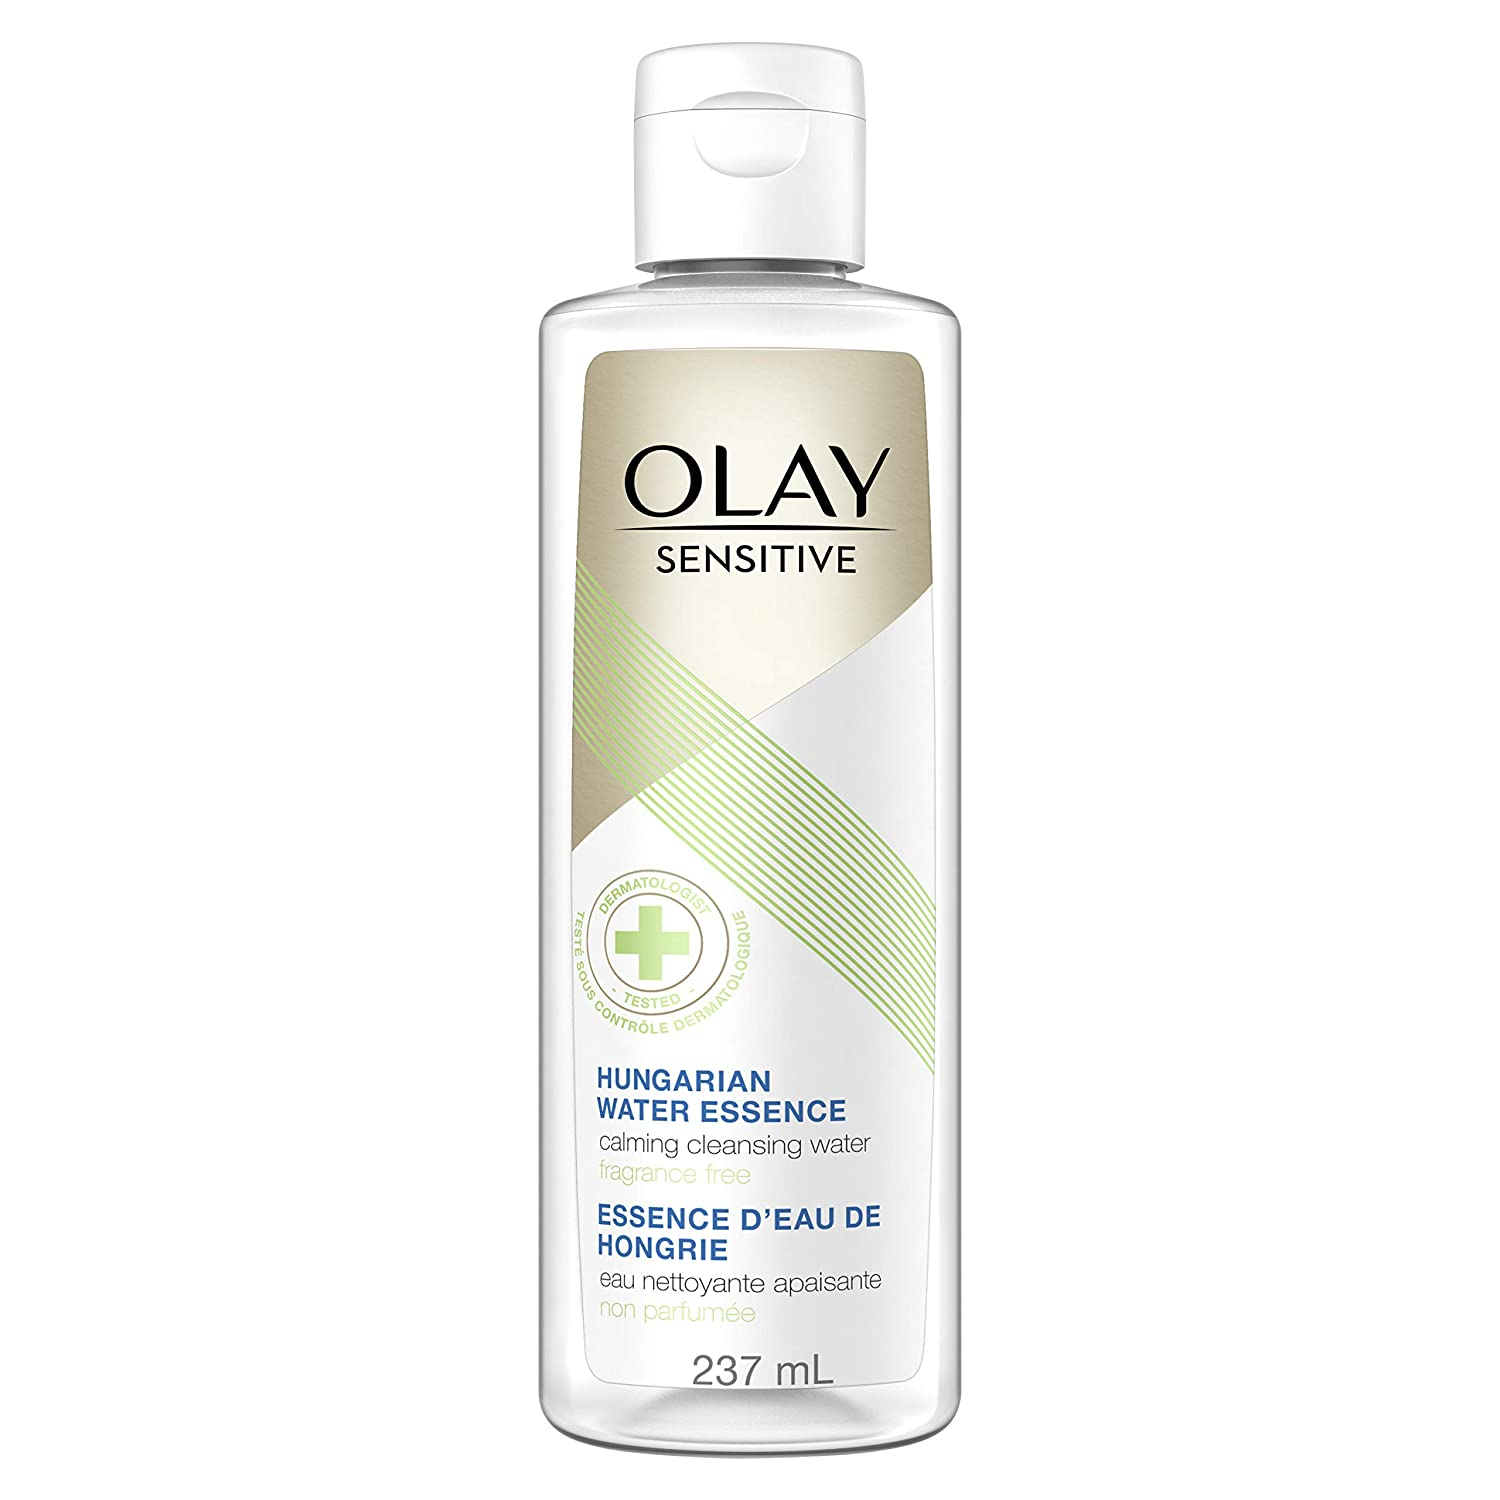 Cheap Olay Super intense SALE Sensitive Calming Cleansing 237ml Ounce Water 8